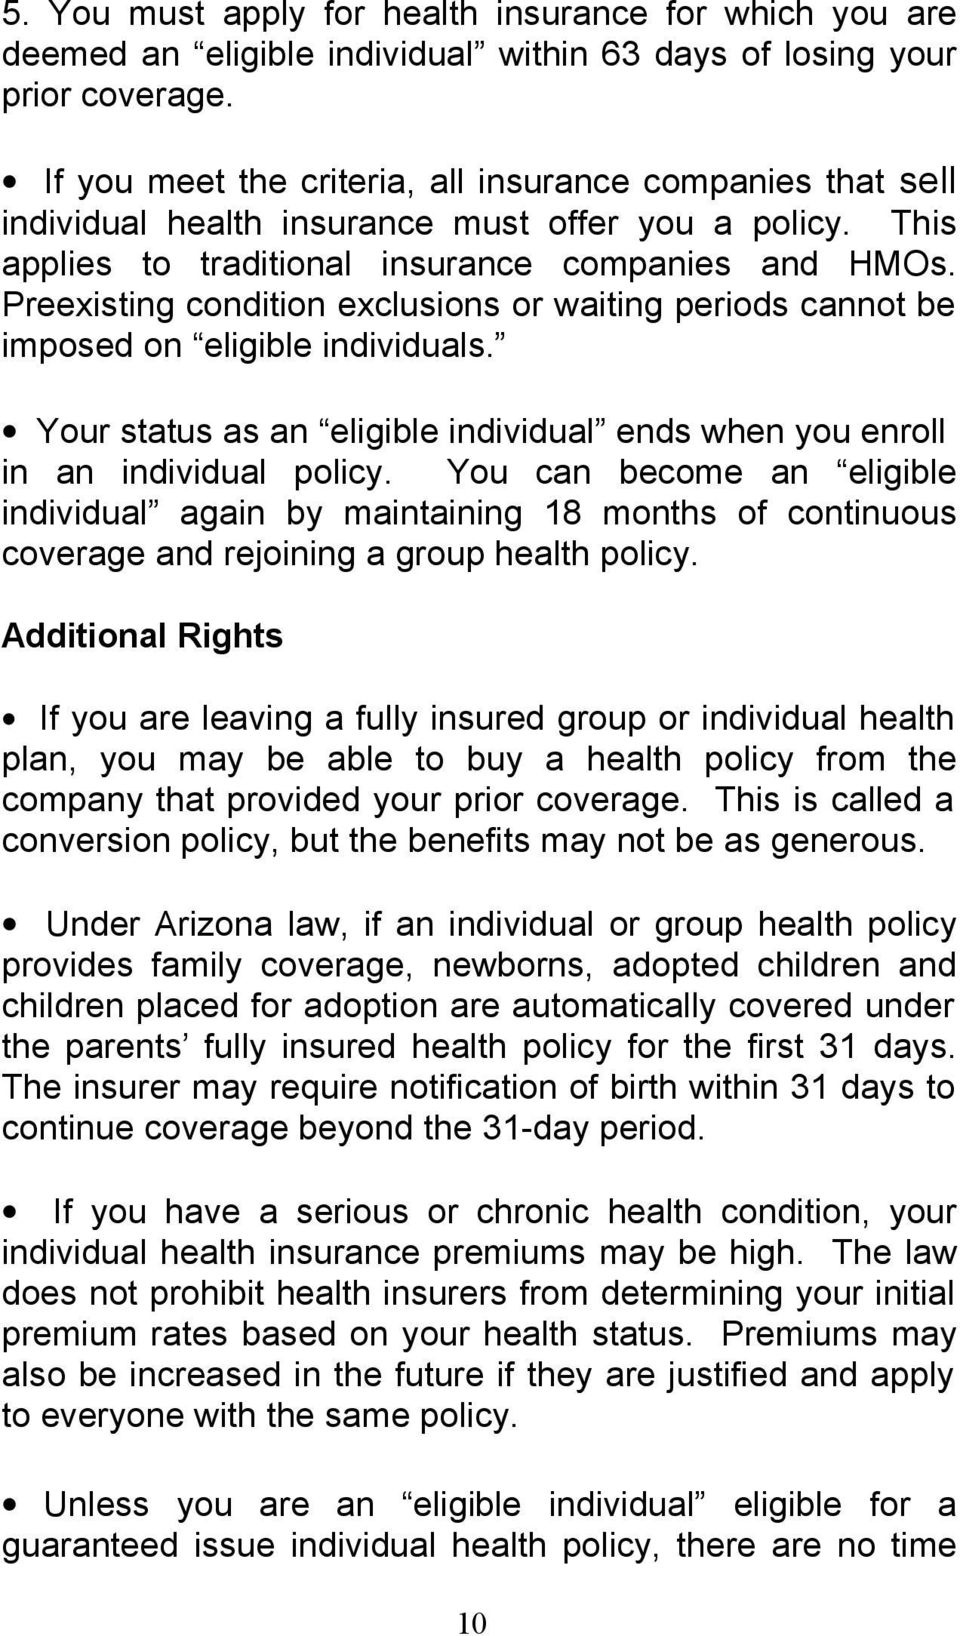 Preexisting condition exclusions or waiting periods cannot be imposed on eligible individuals. Your status as an eligible individual ends when you enroll in an individual policy.